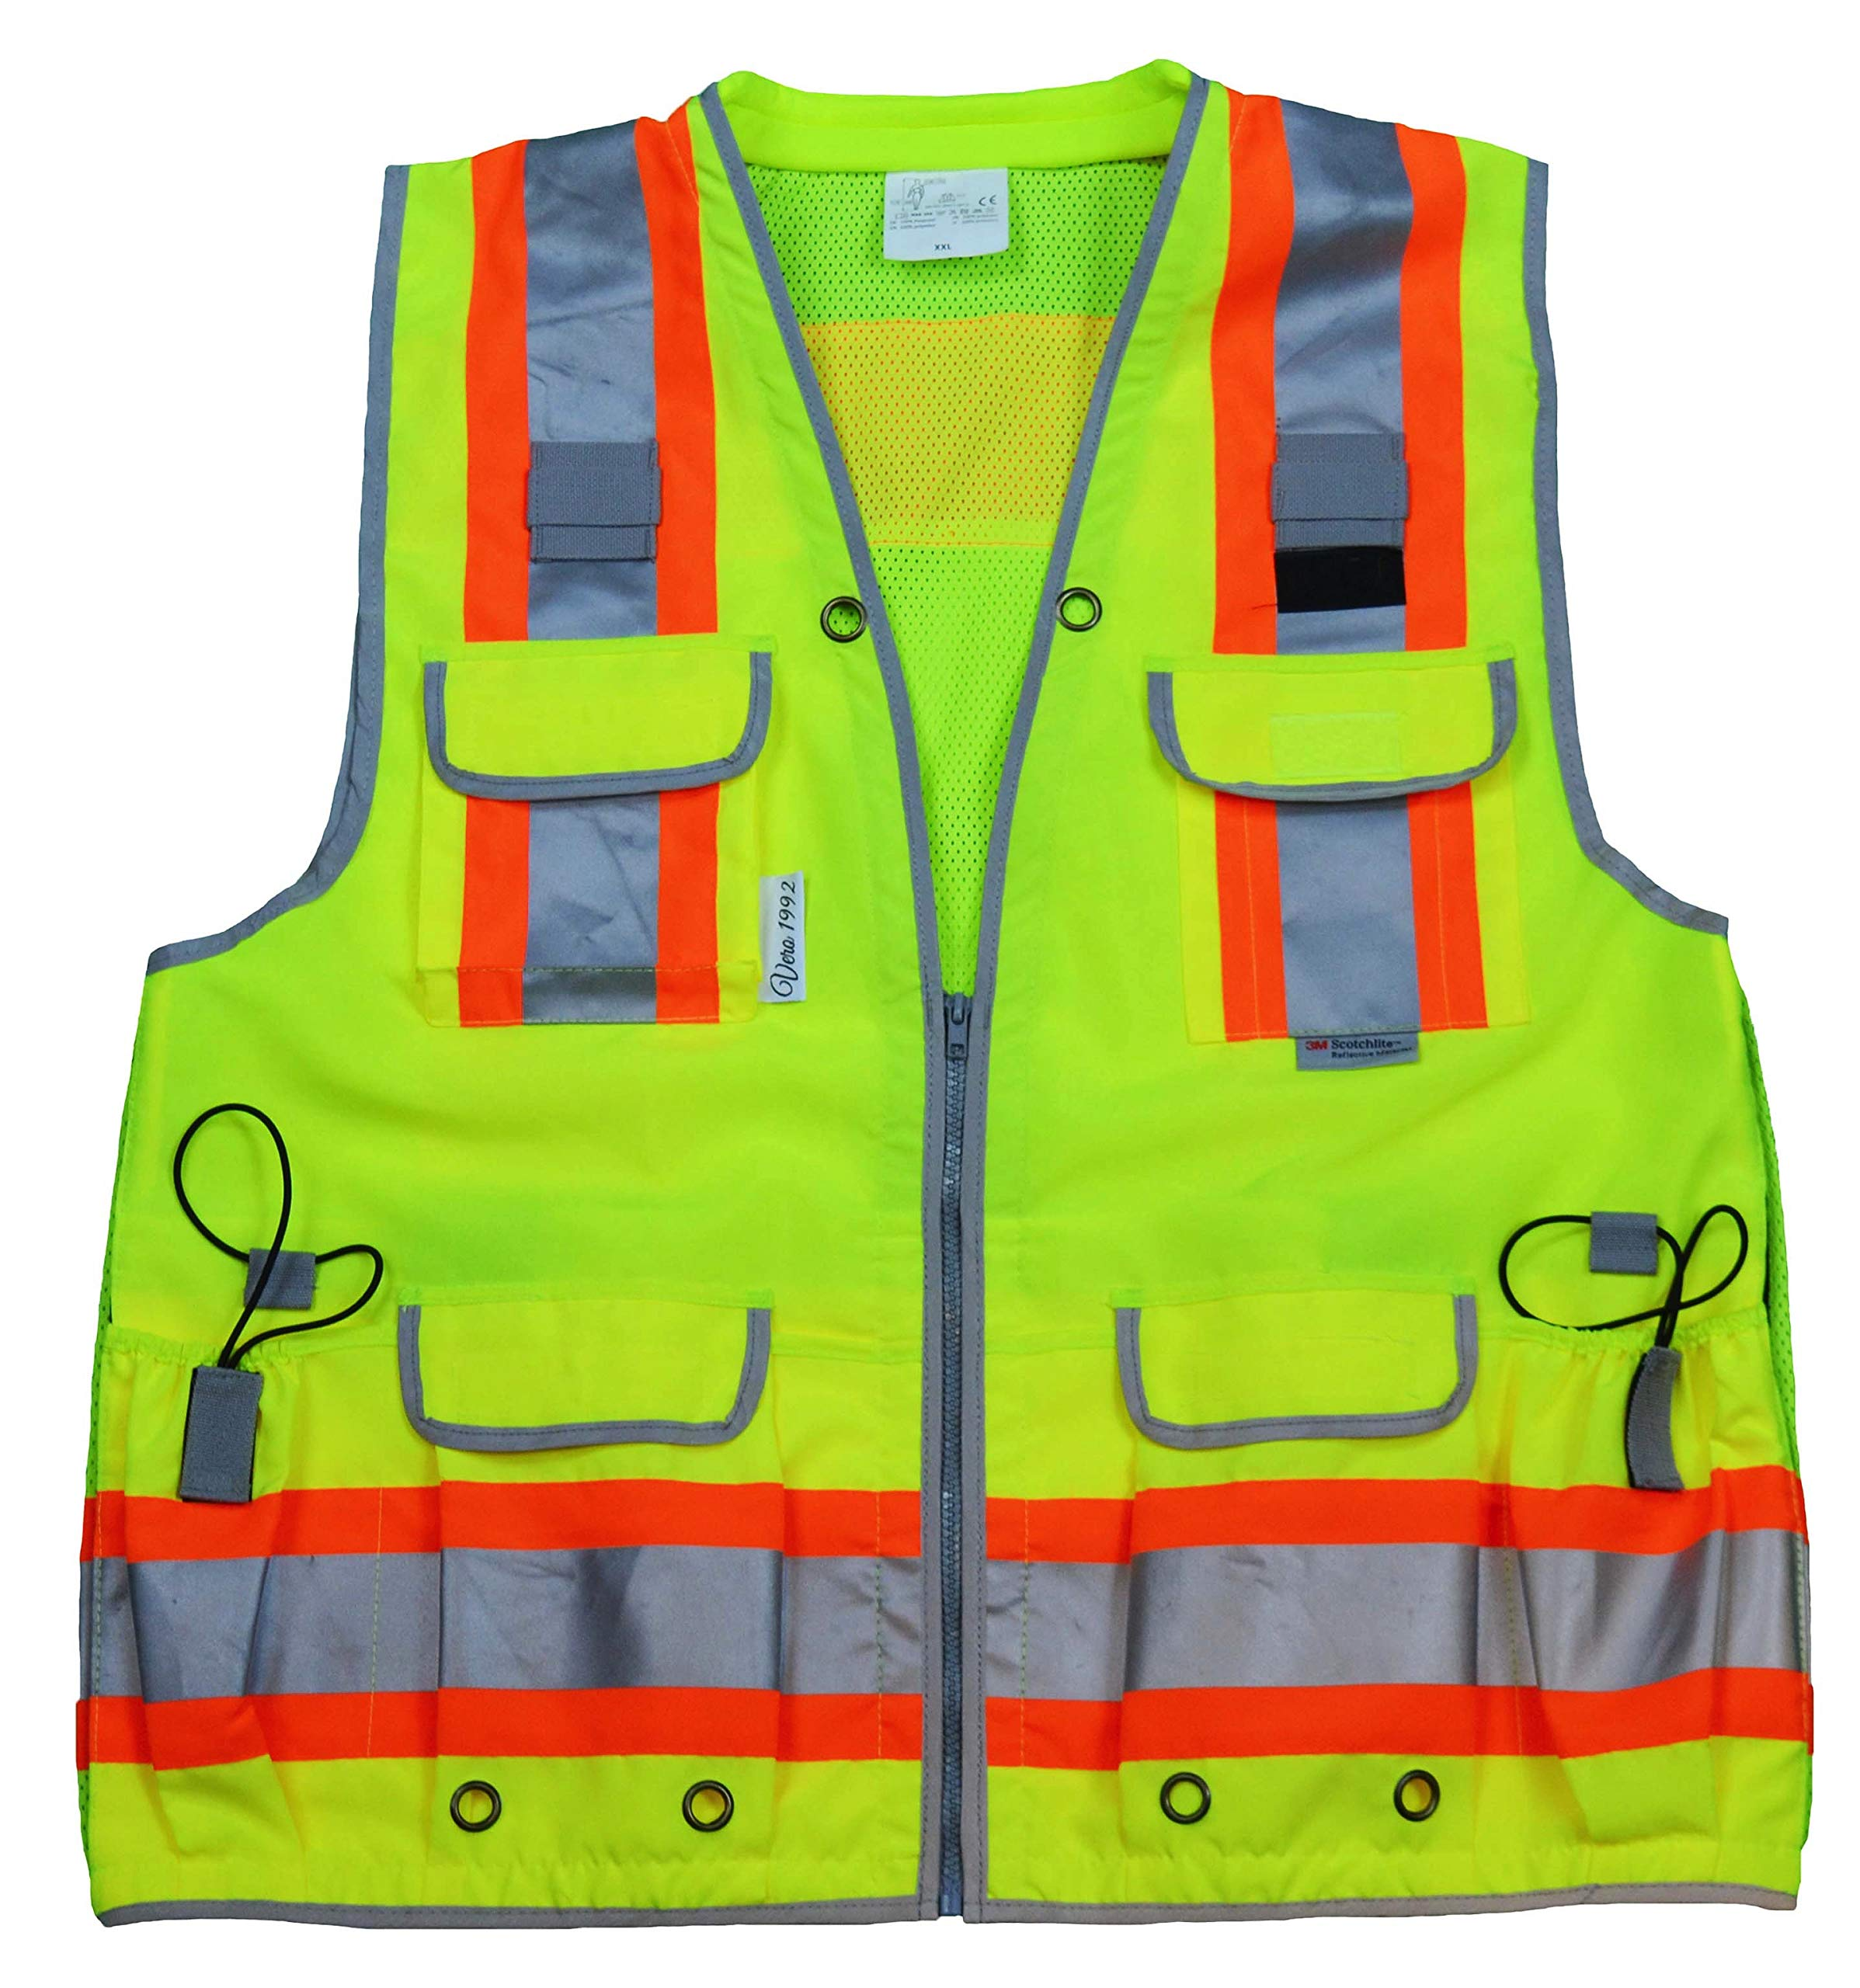 Vero1992 Reflective Vest Class 2 Heavy Woven Two Tone Engineer Hi Viz Yellow Safety Vest 3M 8712 Tape (XX-Large, Yellow)